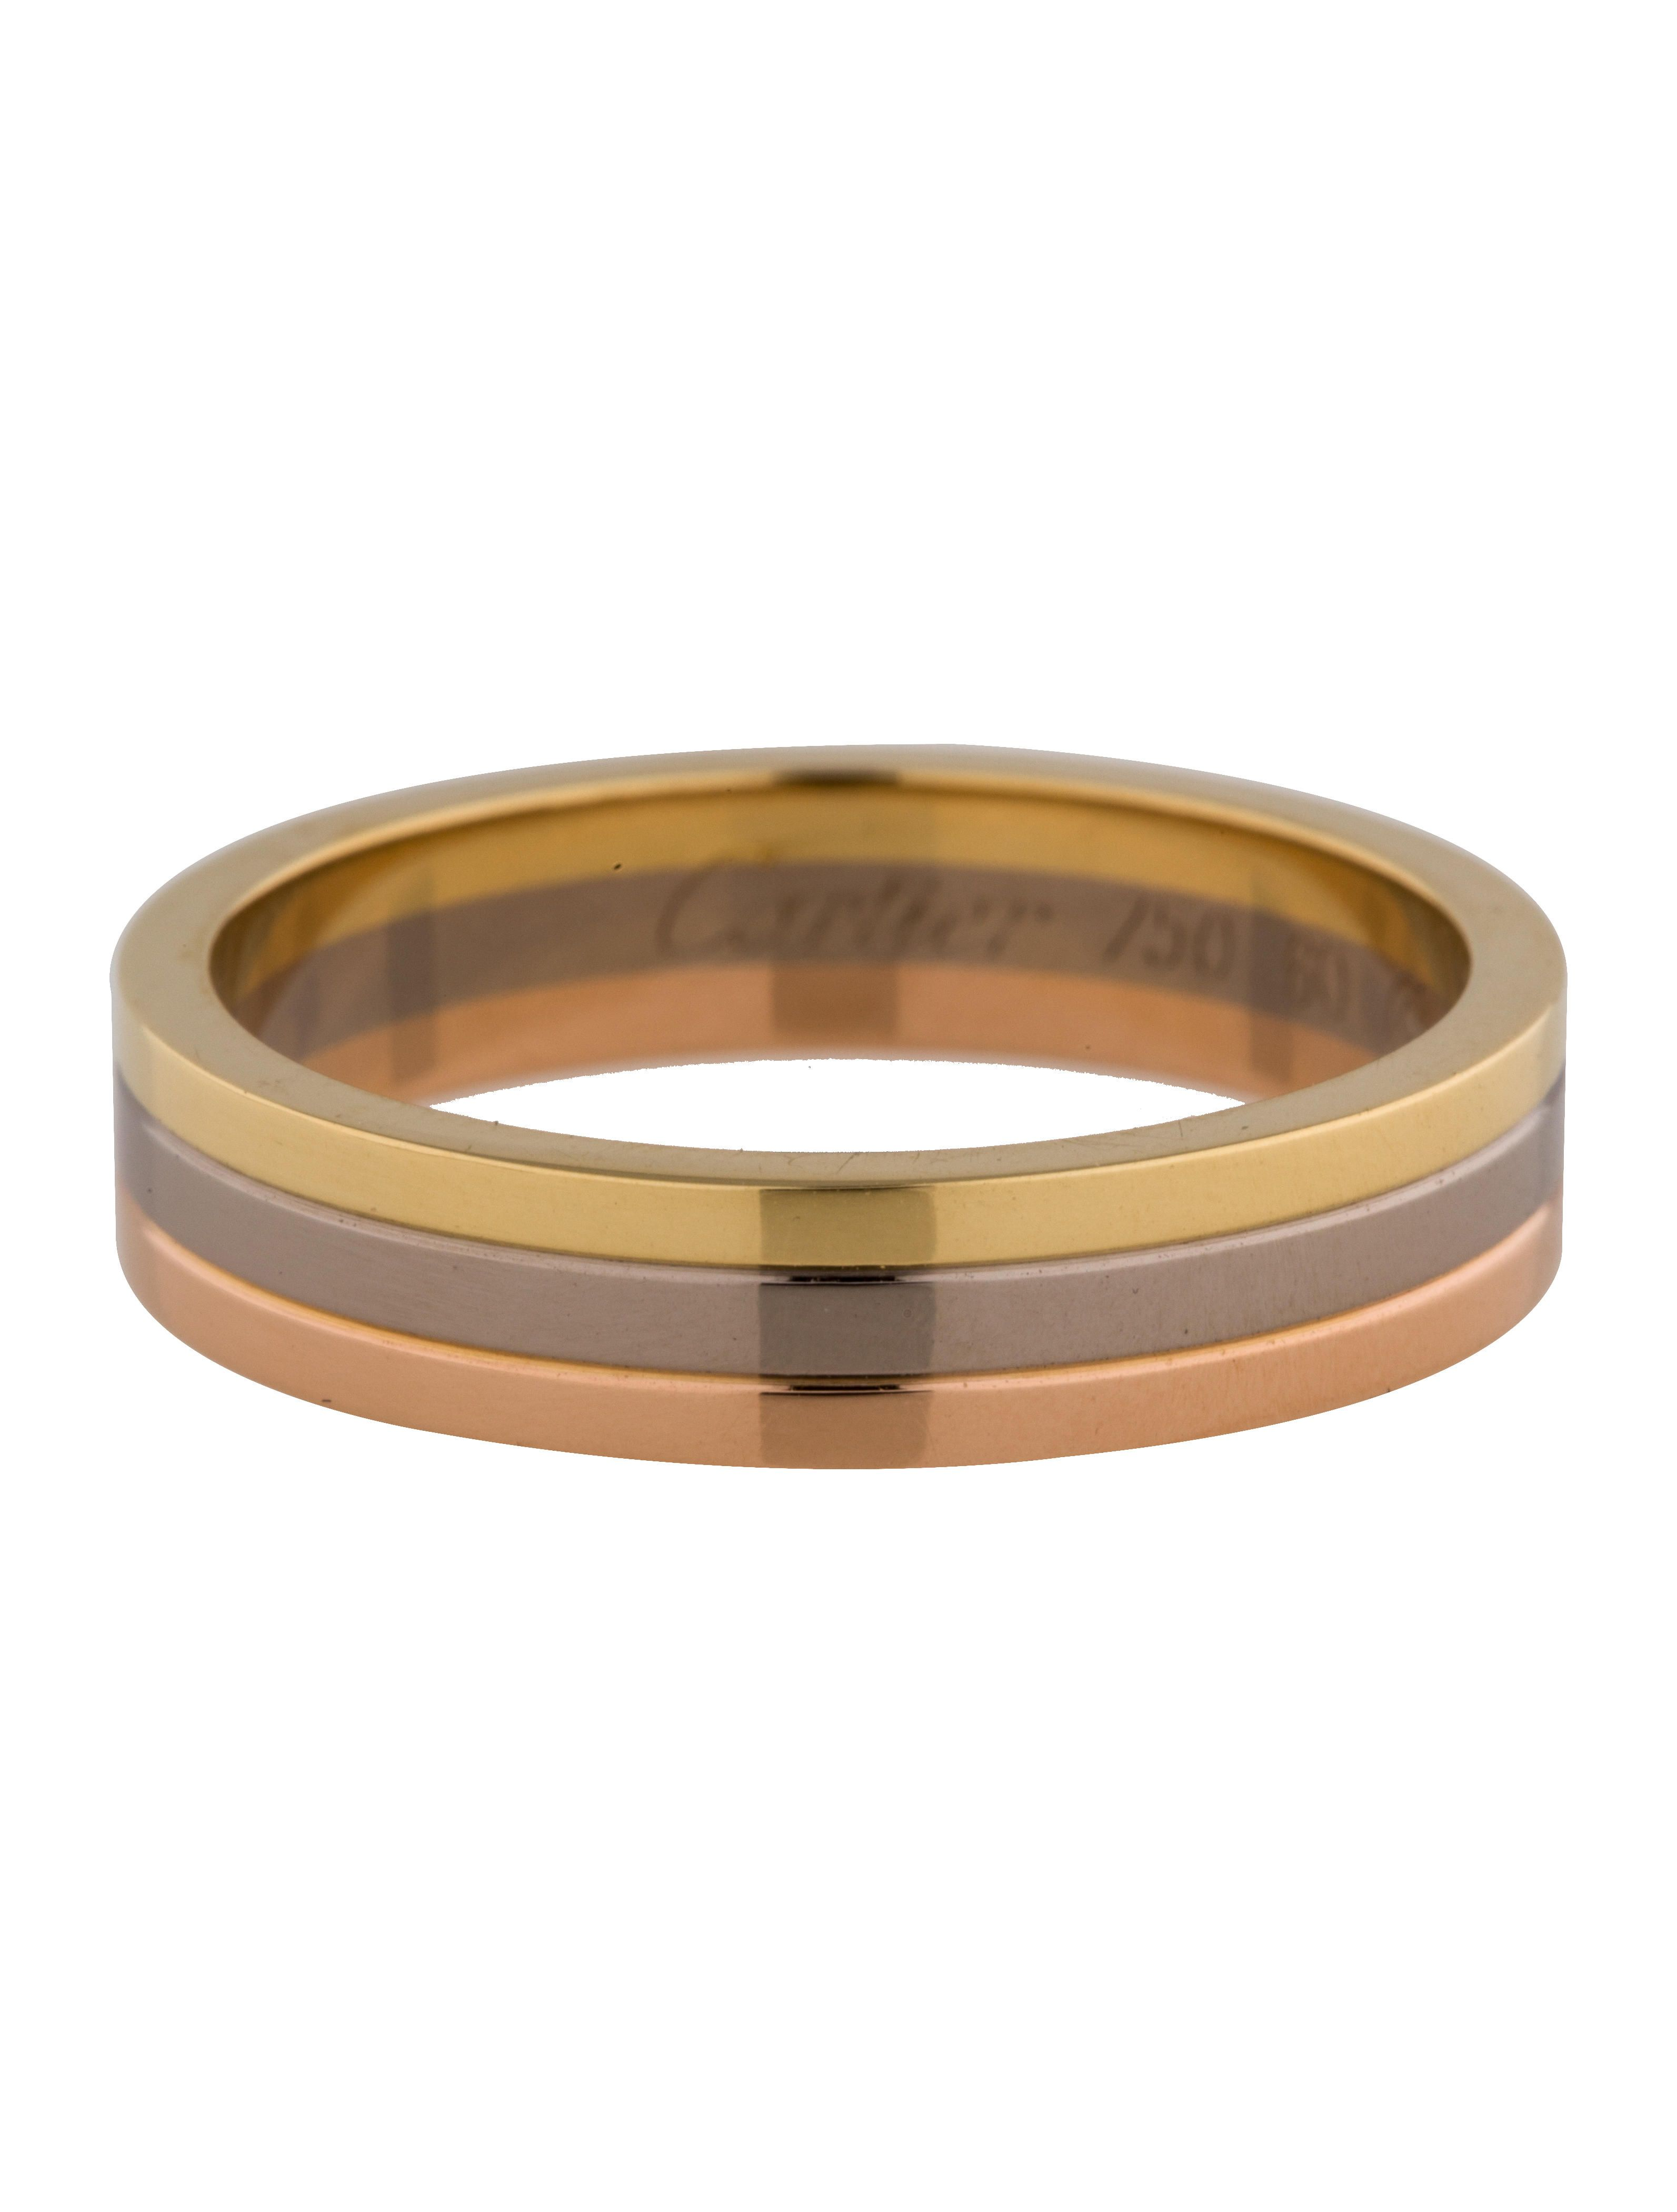 cartier mens wedding band Men s 18K yellow white and rose gold Cartier Trinity Wedding band Includes box and